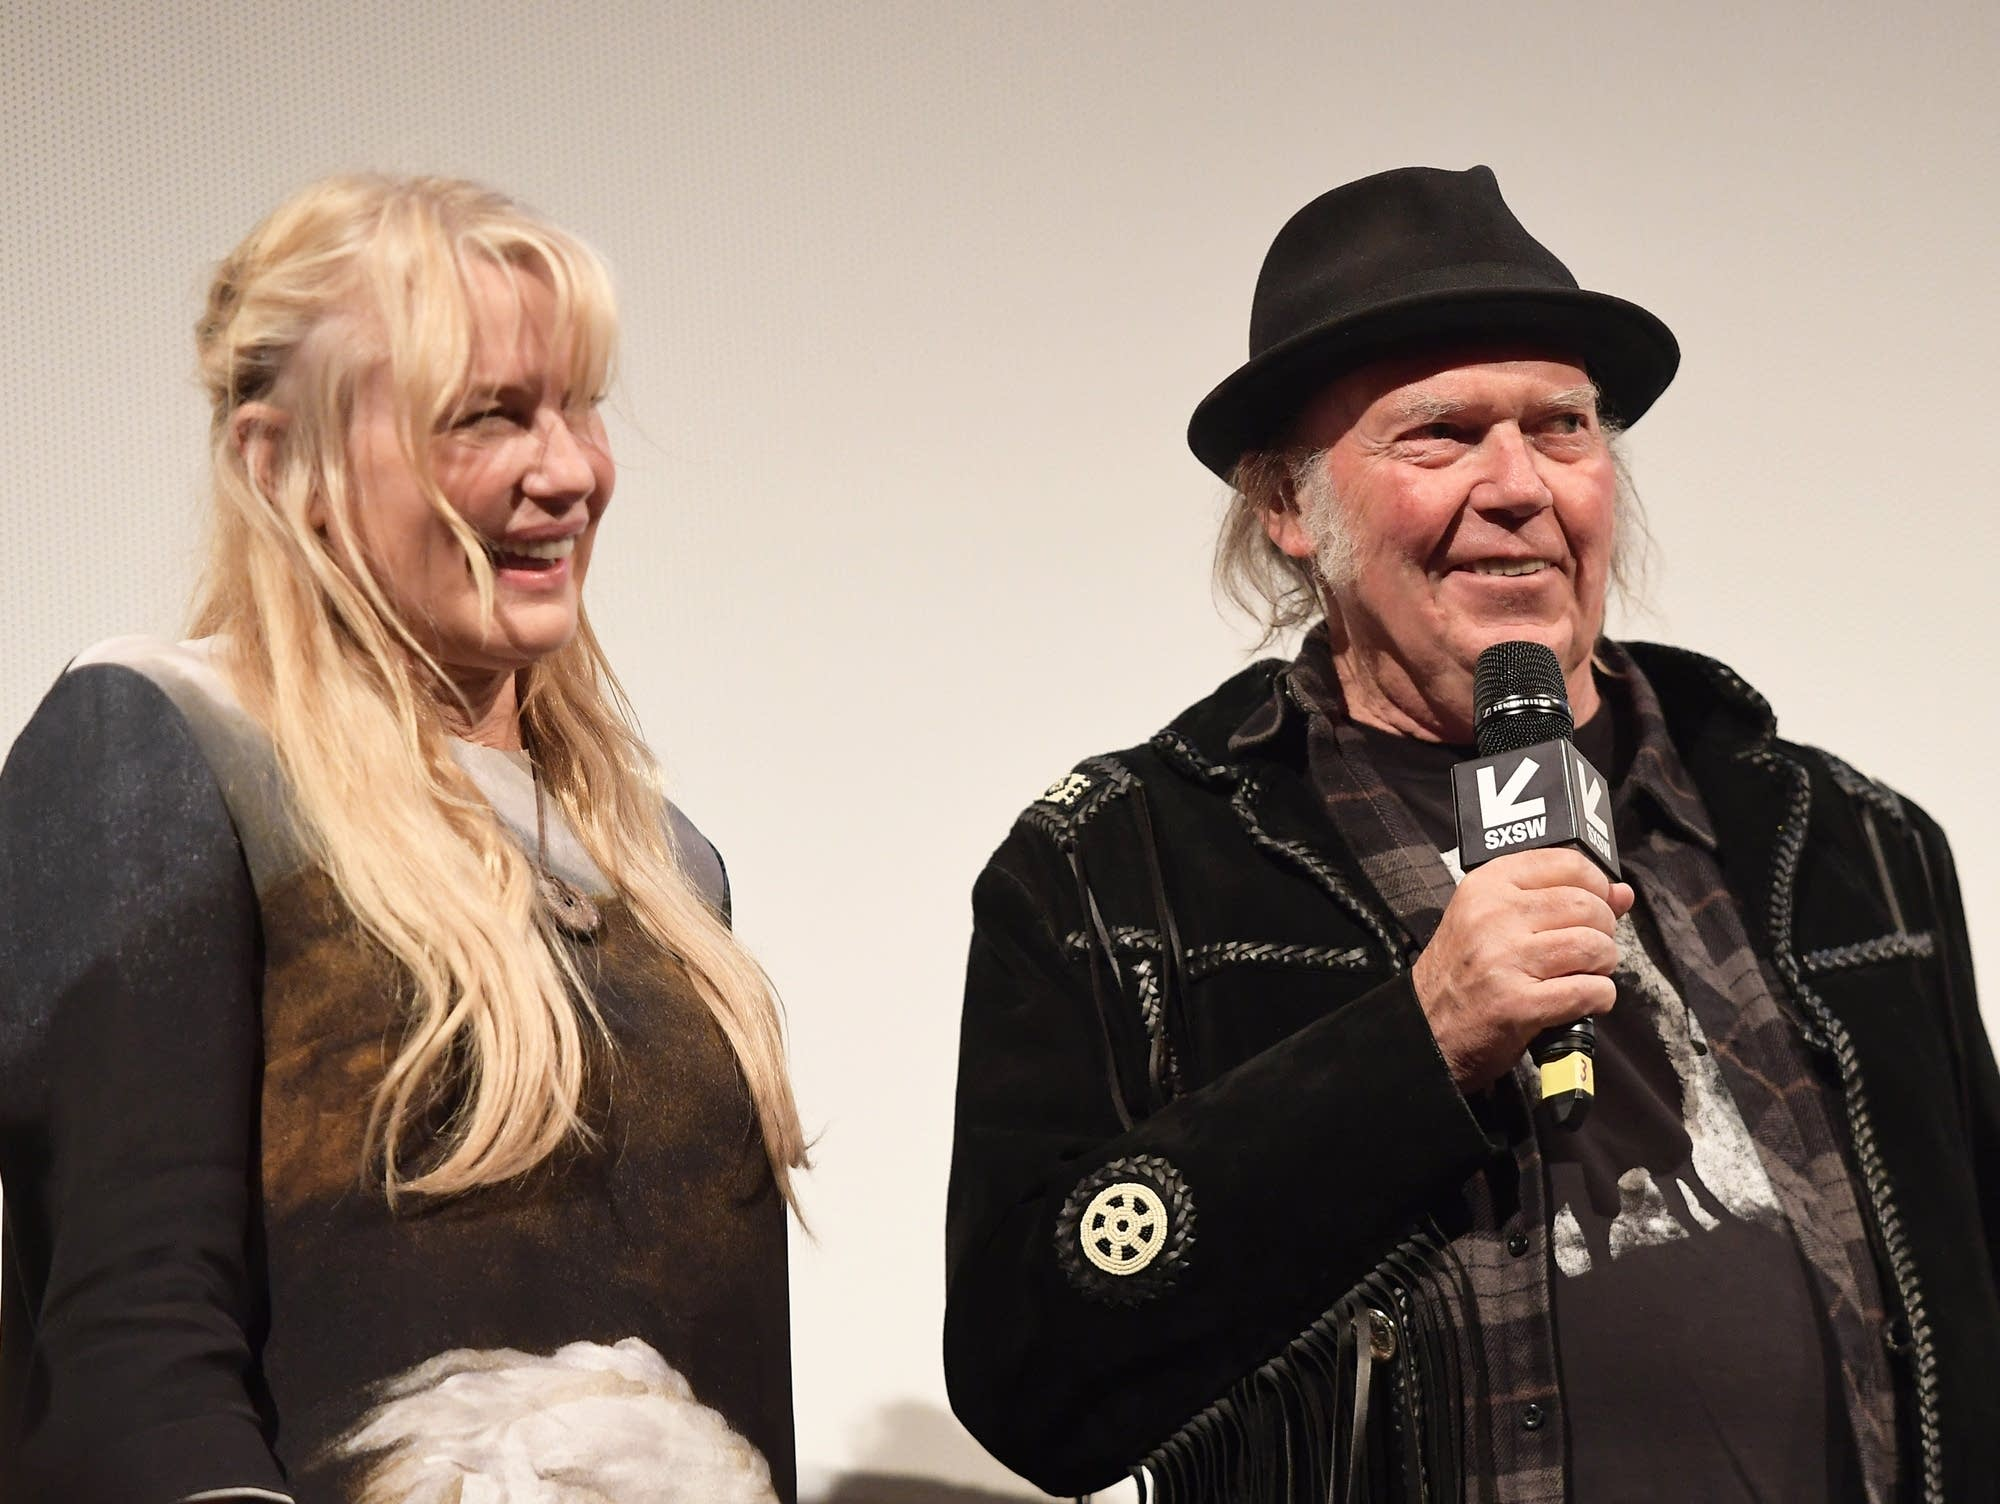 Daryl Hannah and Neil Young at SXSW in 2018.